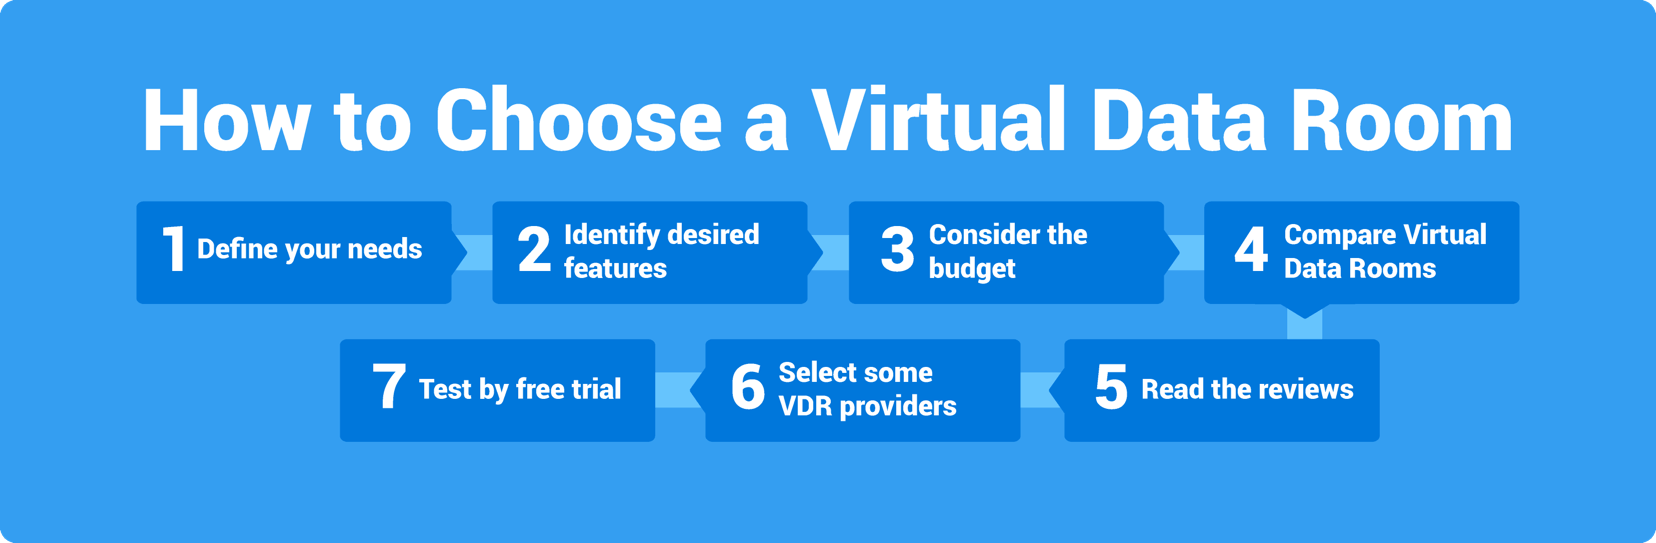 How to choose virtual data room